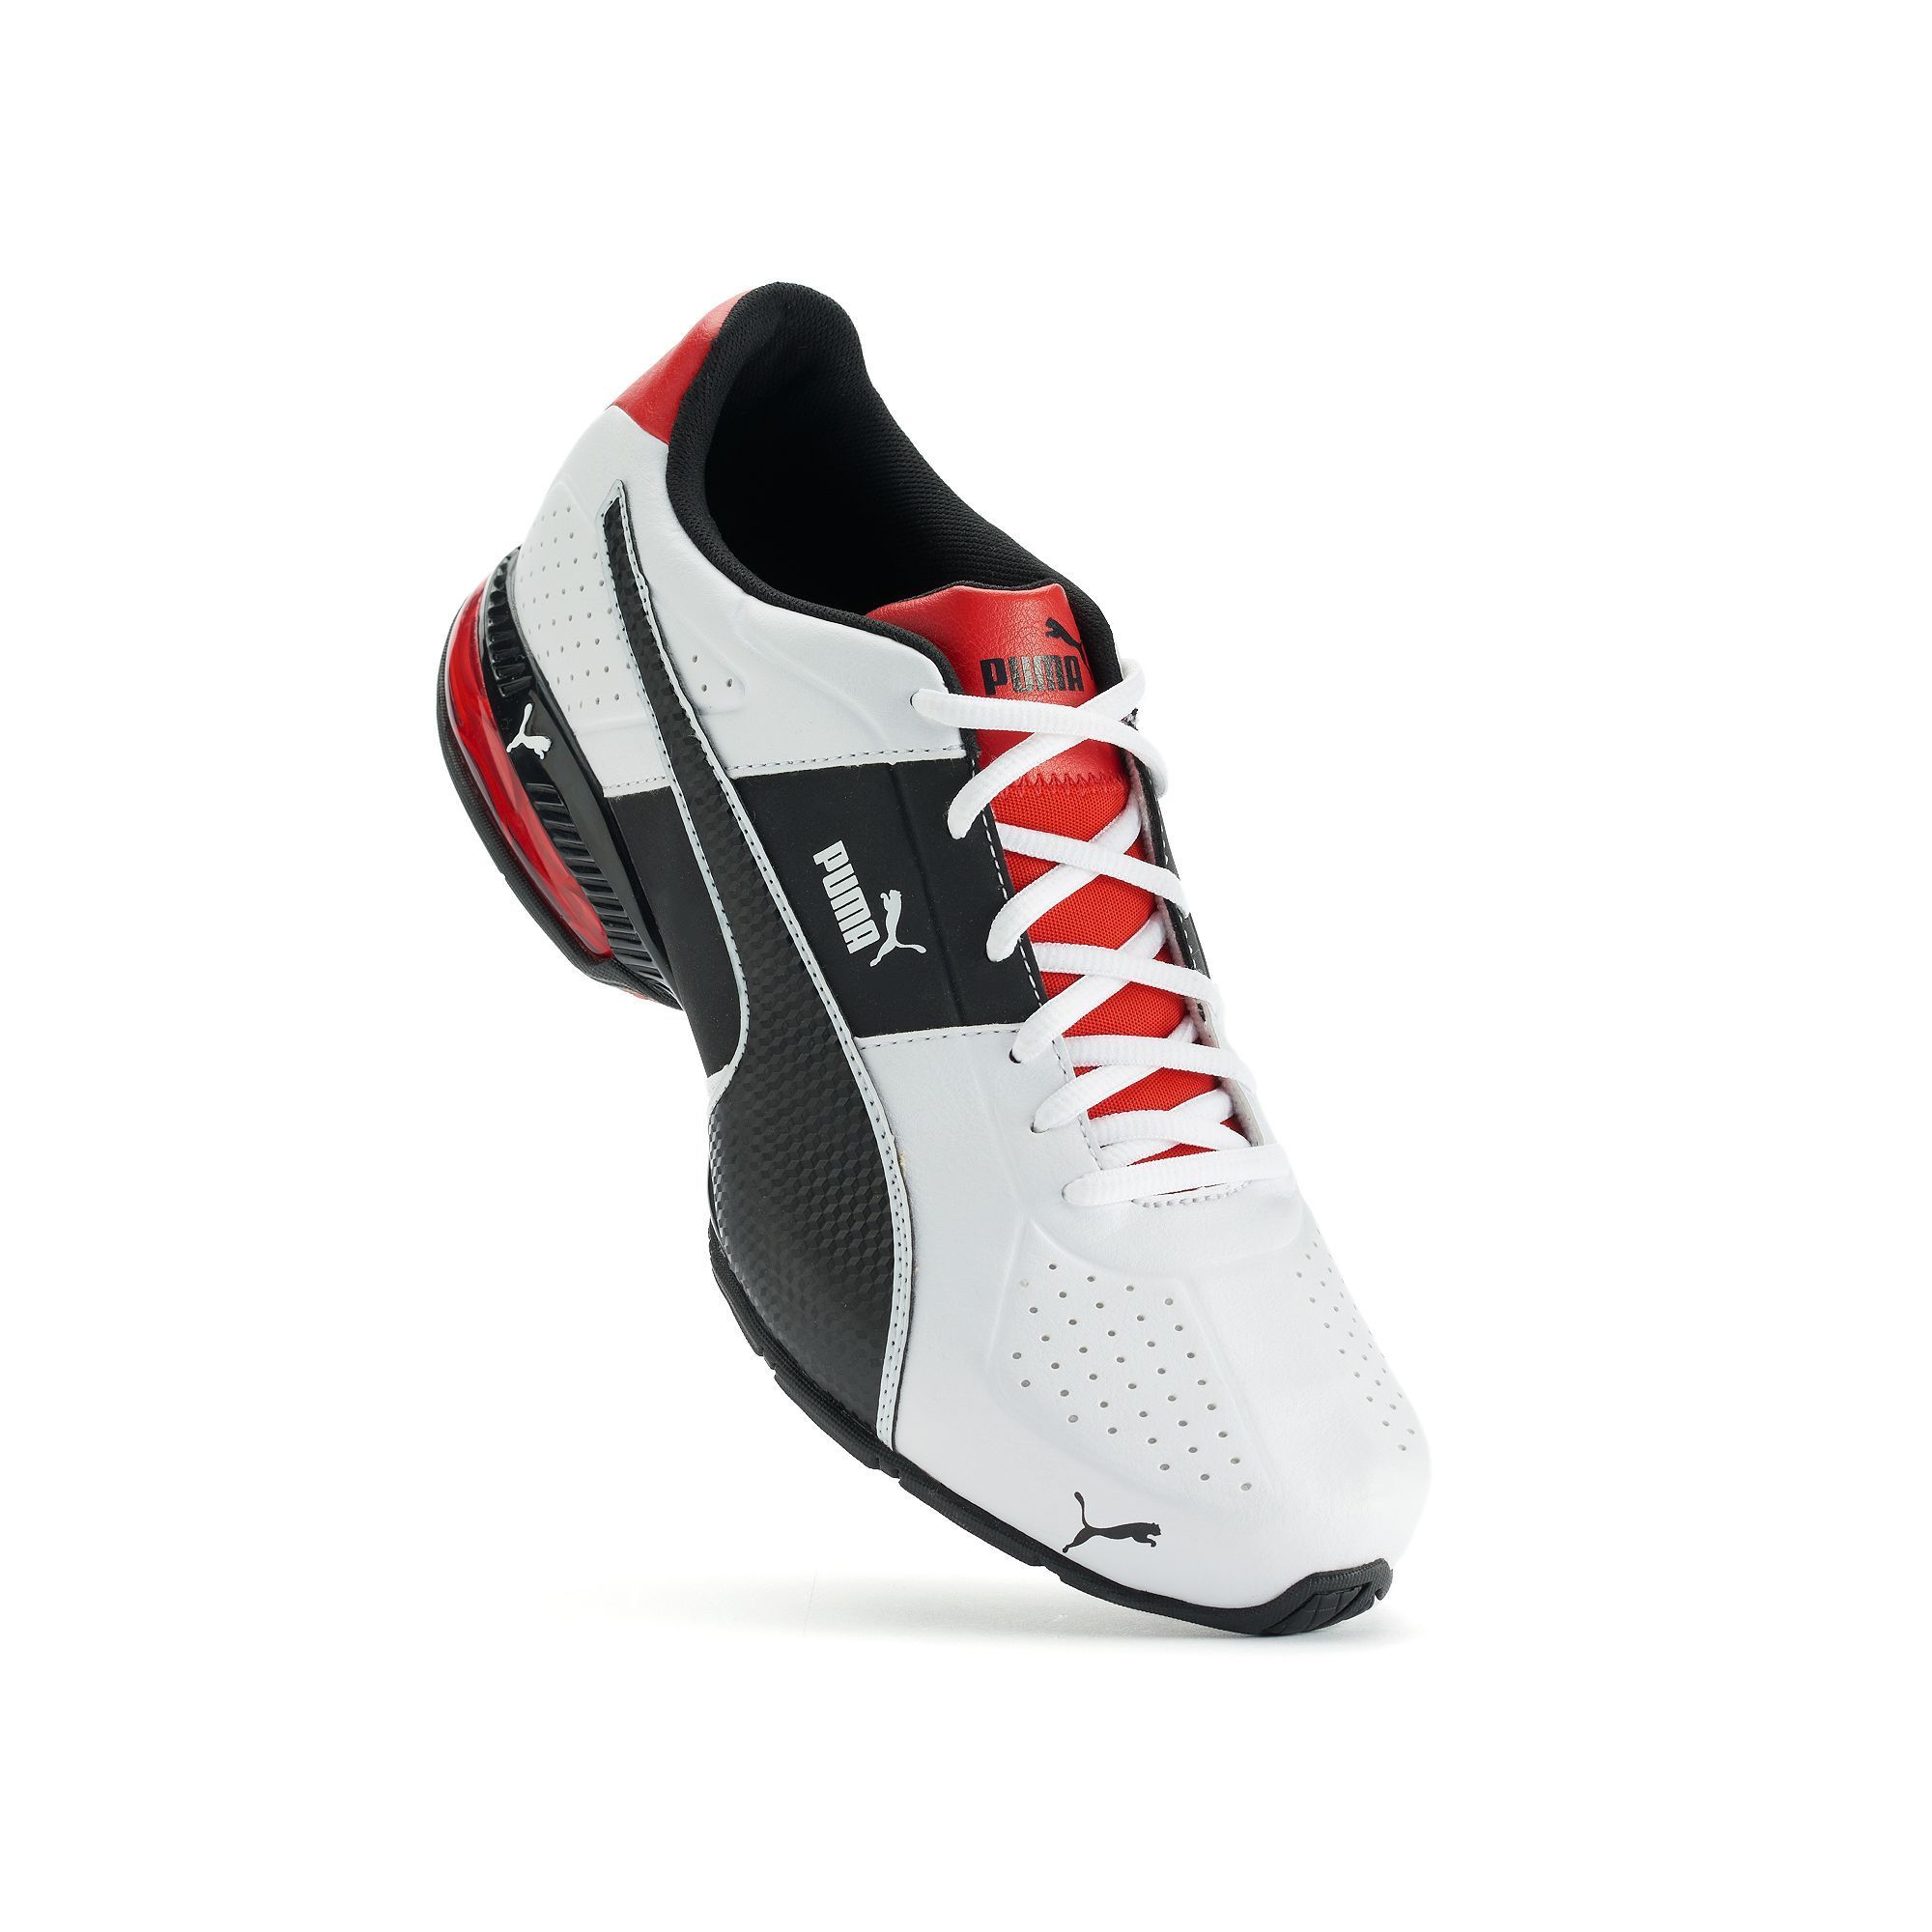 6bd4bcb992 These men s PUMA Cell Surin 2 running shoes offers a lighter